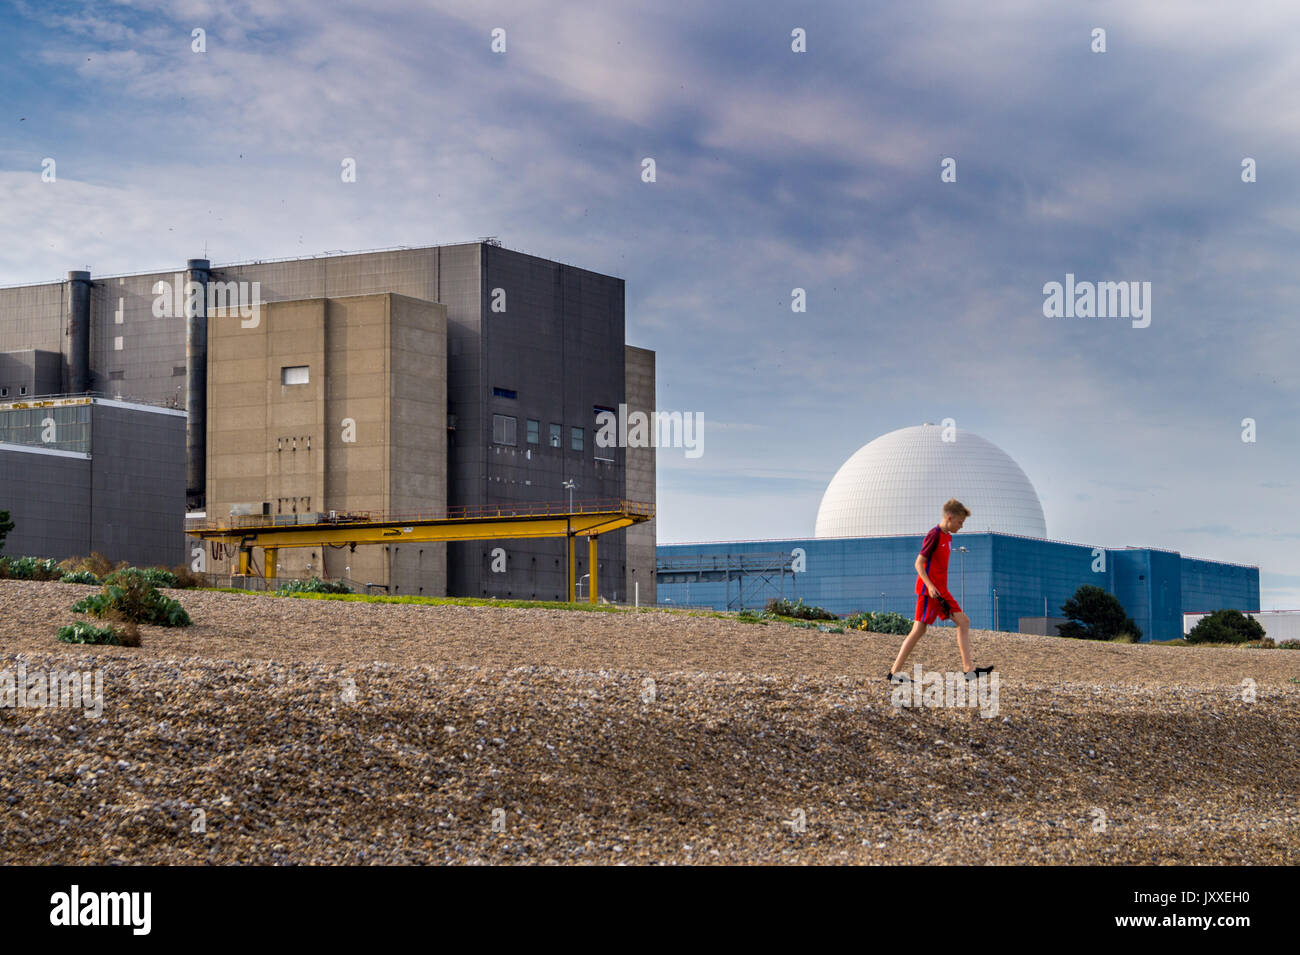 A young boy walking on the beach in front of  of Sizewell A Magnox and Sizewell B PWR nuclear reactors, Sizewell Beach, Suffolk, England - Stock Image